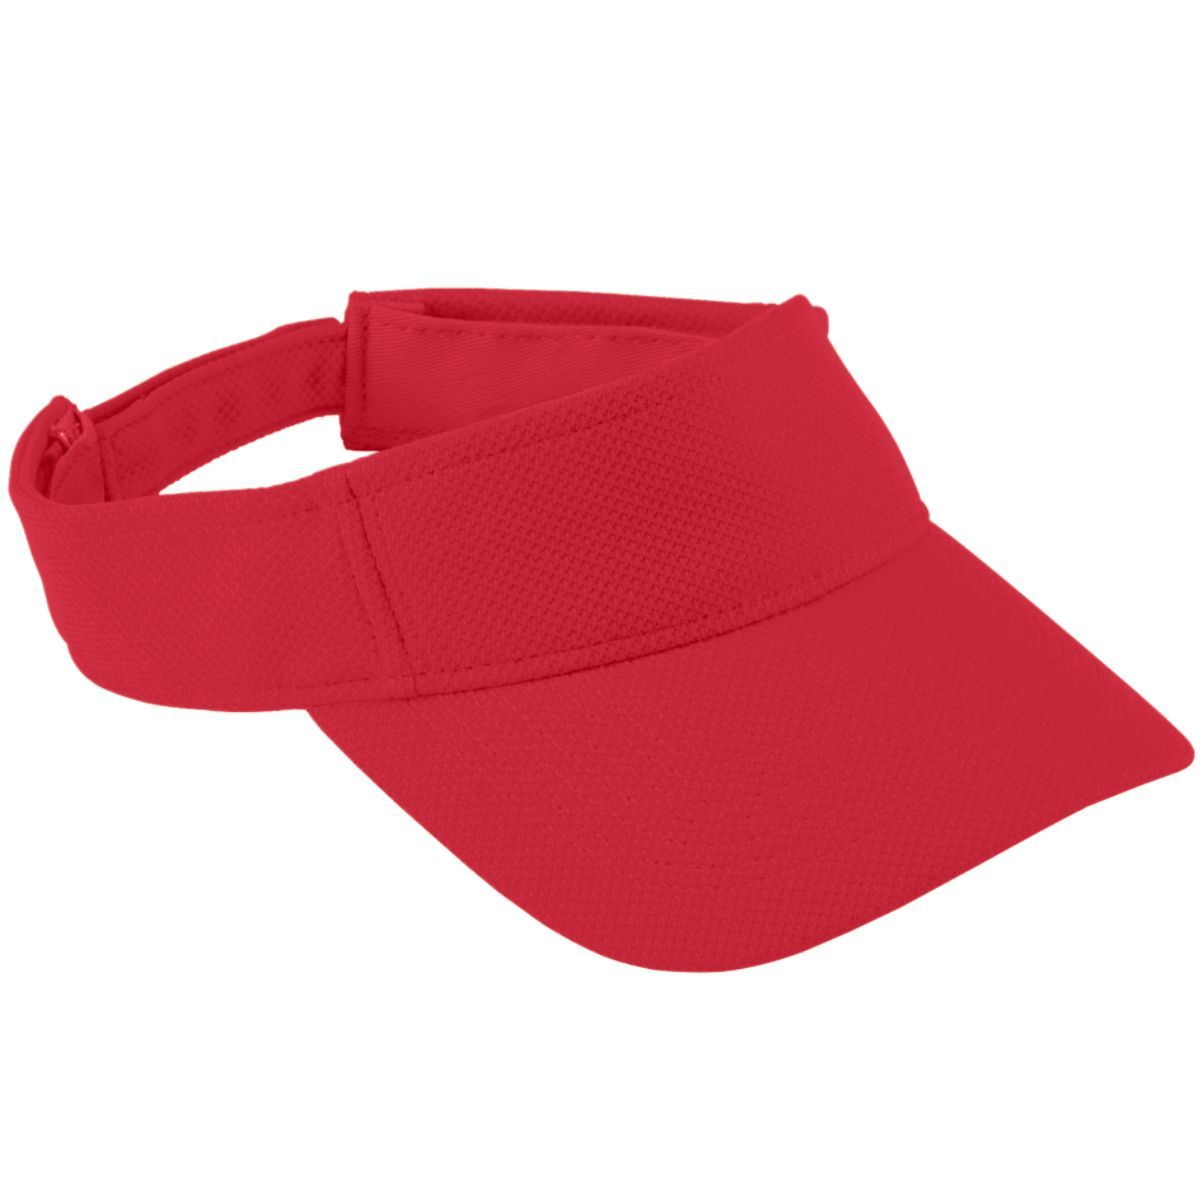 Adjustable Wicking Mesh Visor - Red